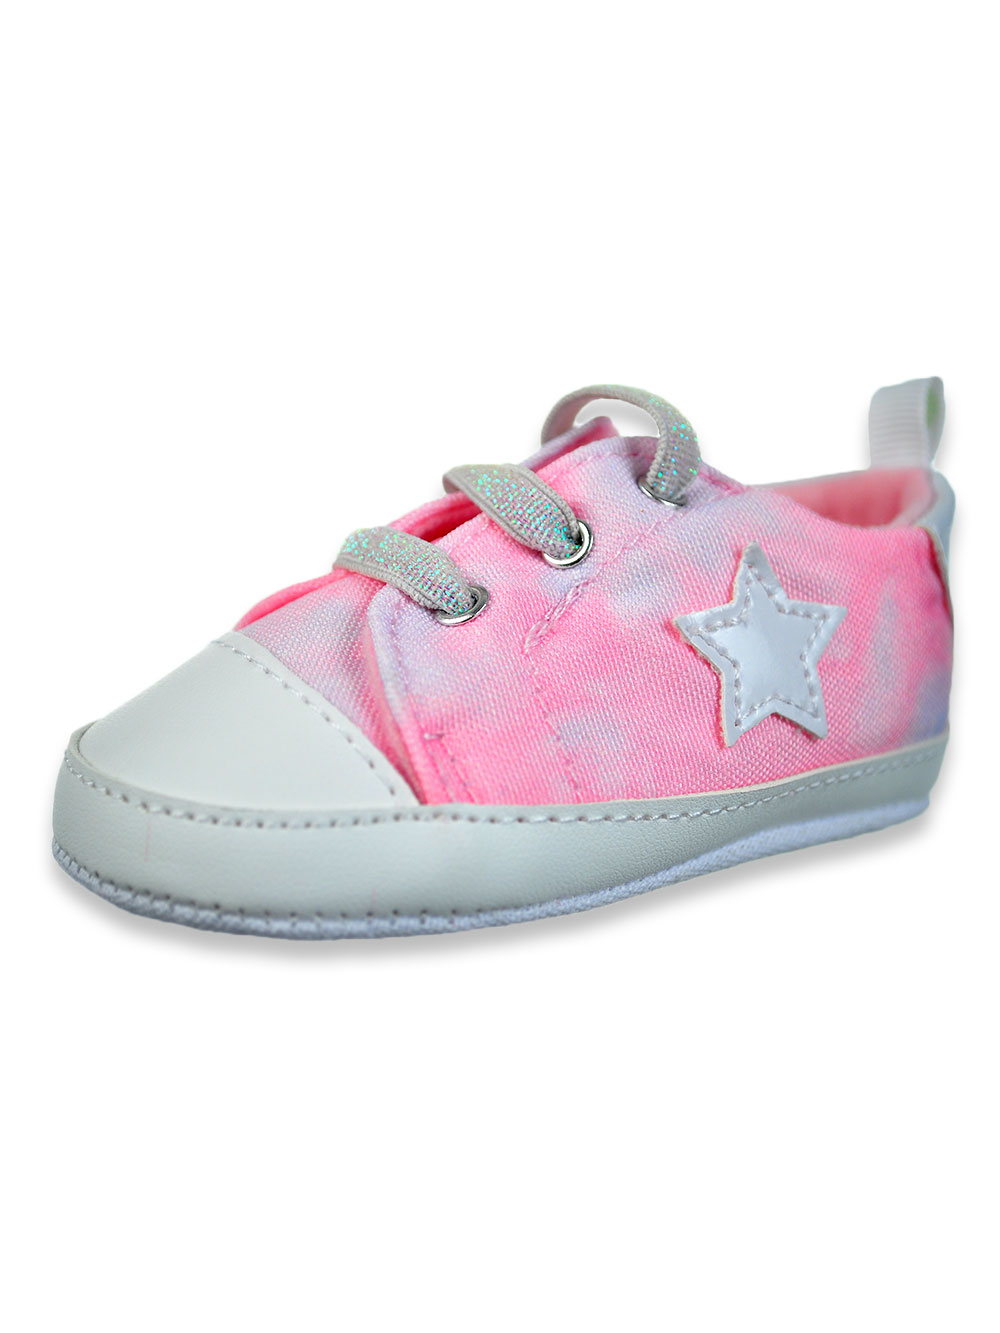 Girls Pink Sneakers and Booties